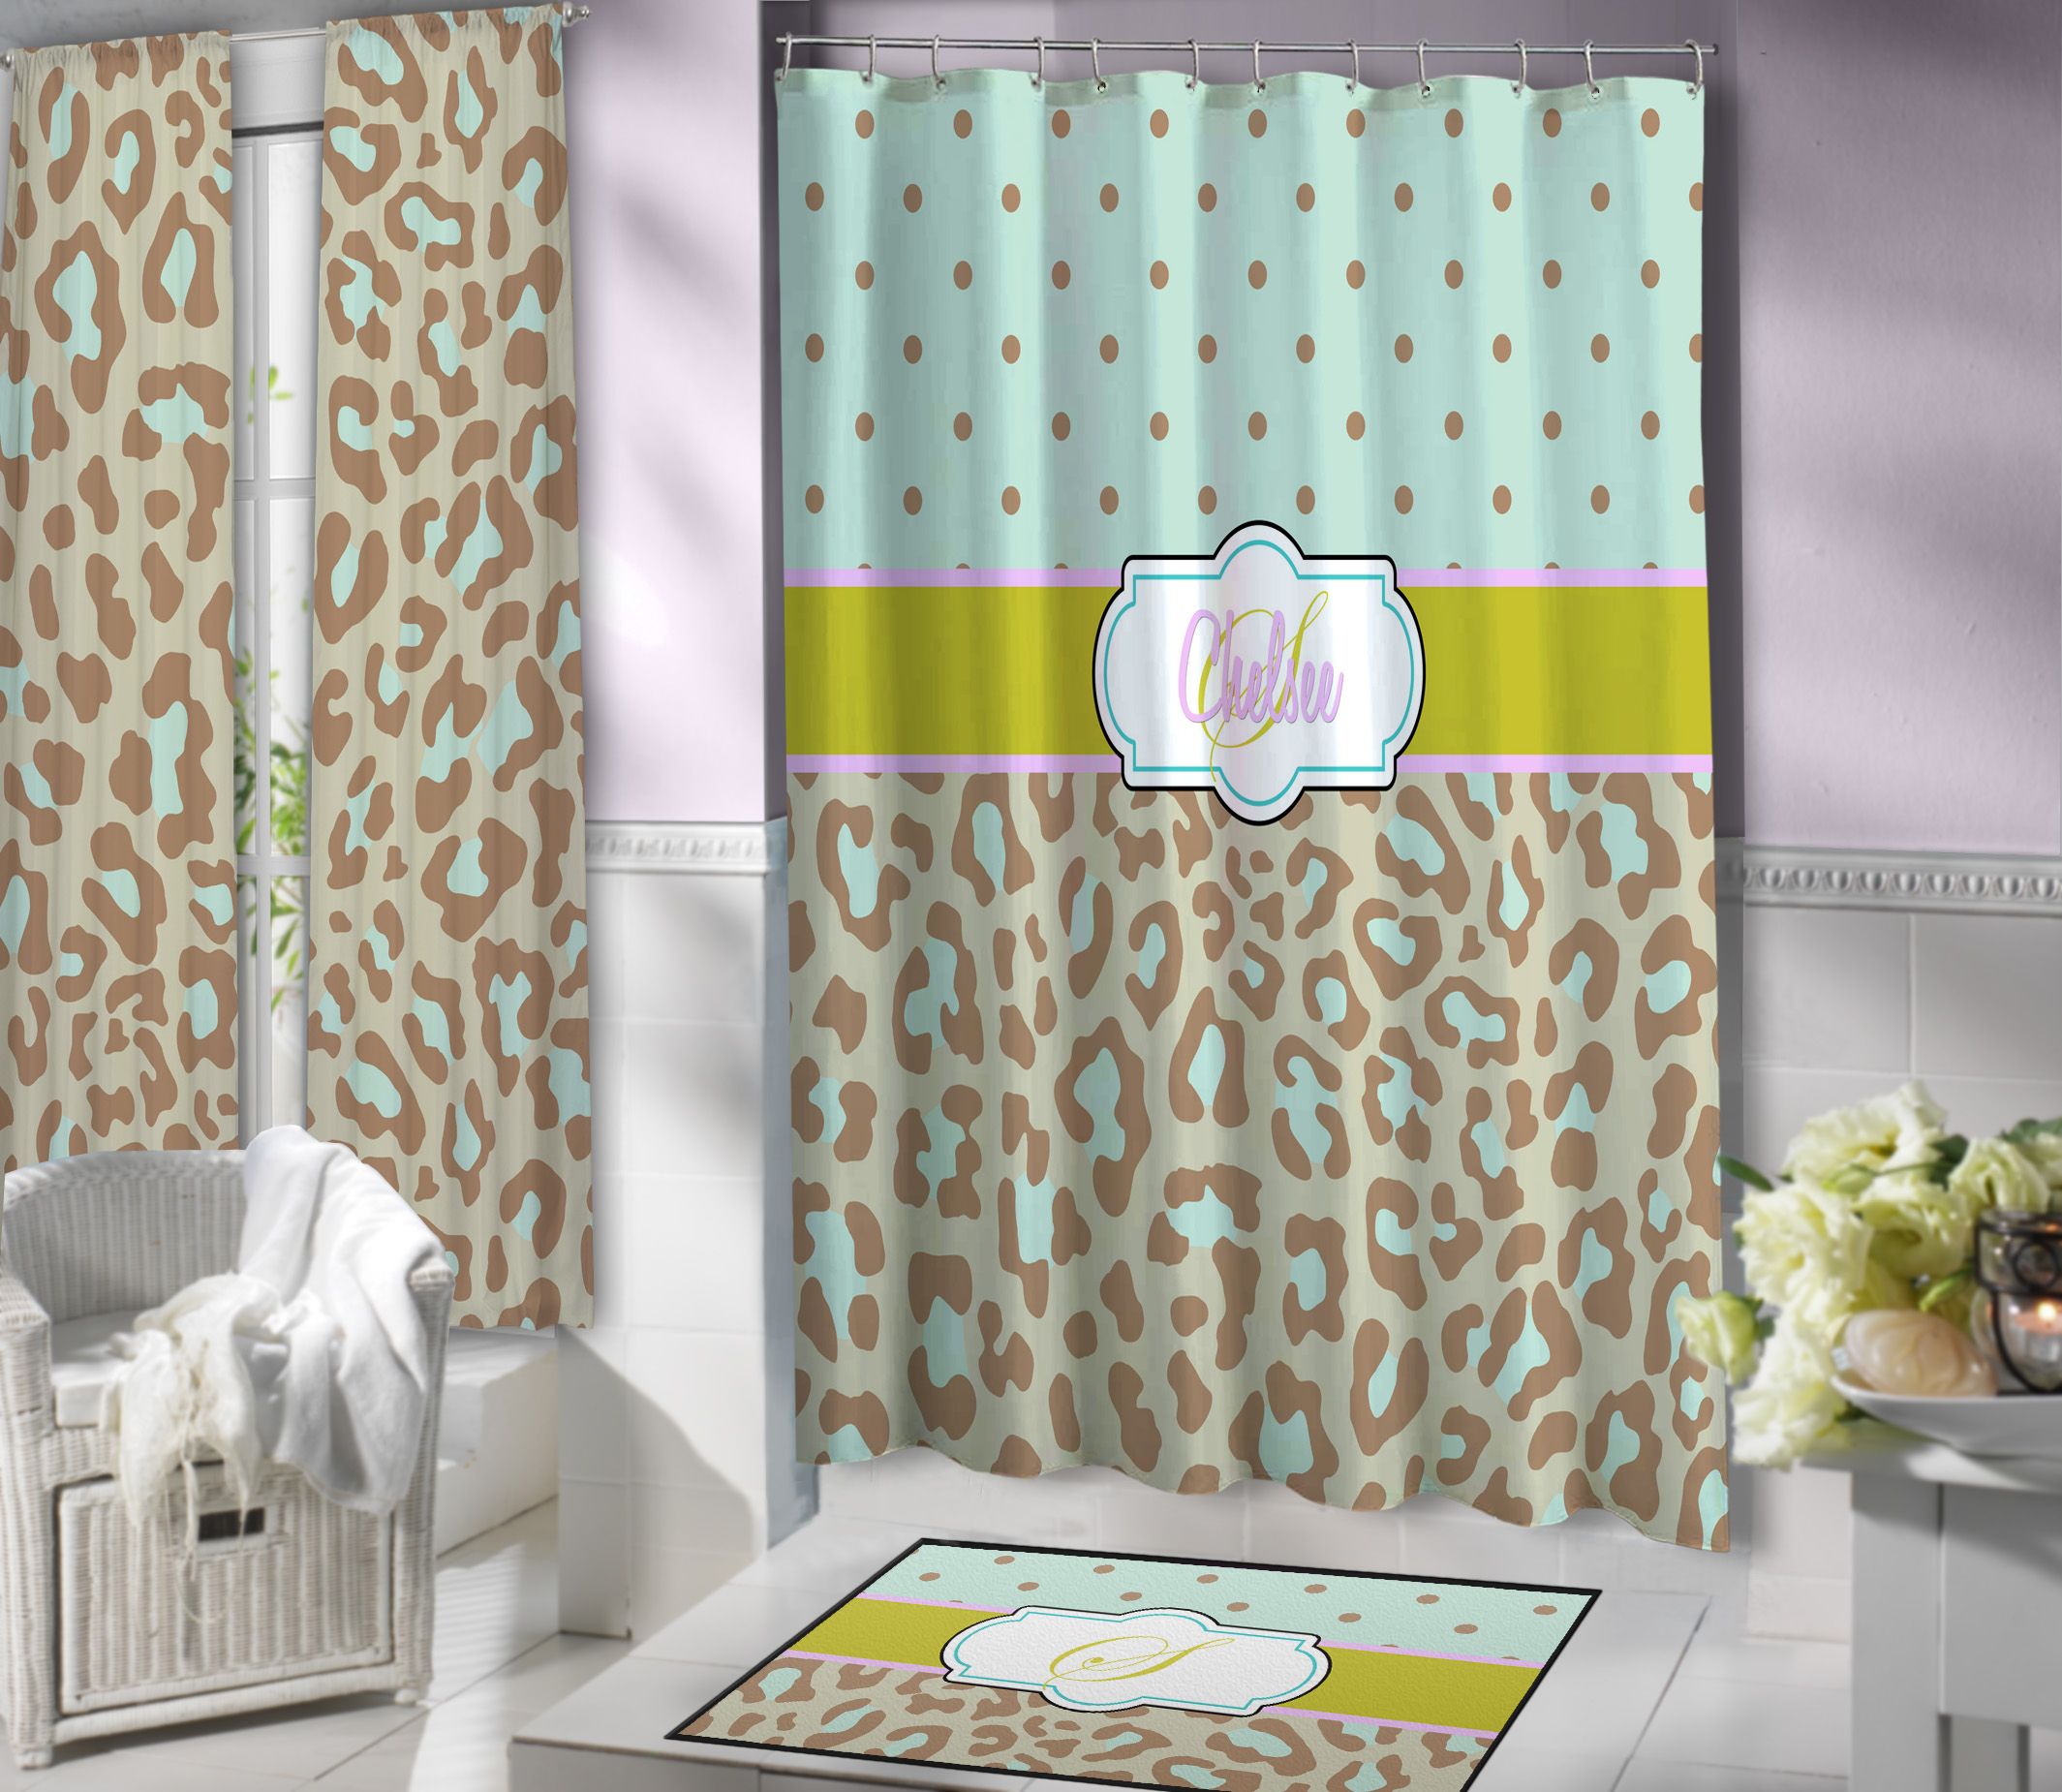 Cute Animal Print Shower Curtain For Girls With Mint Green Cheetah Print 114